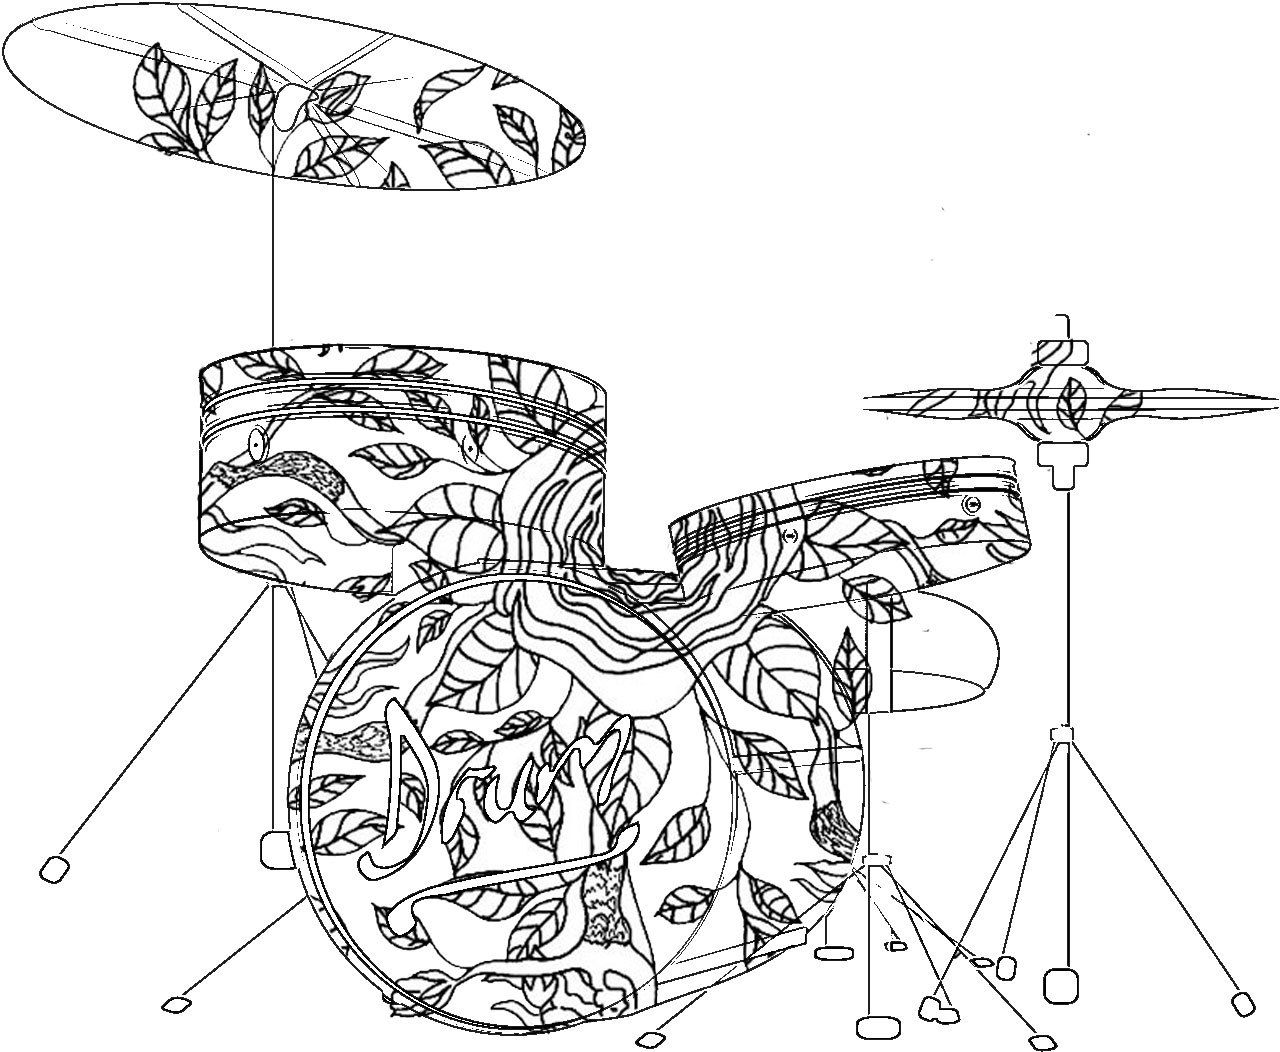 Adult Coloring Pages: DrumsADULT COLORING BOOK